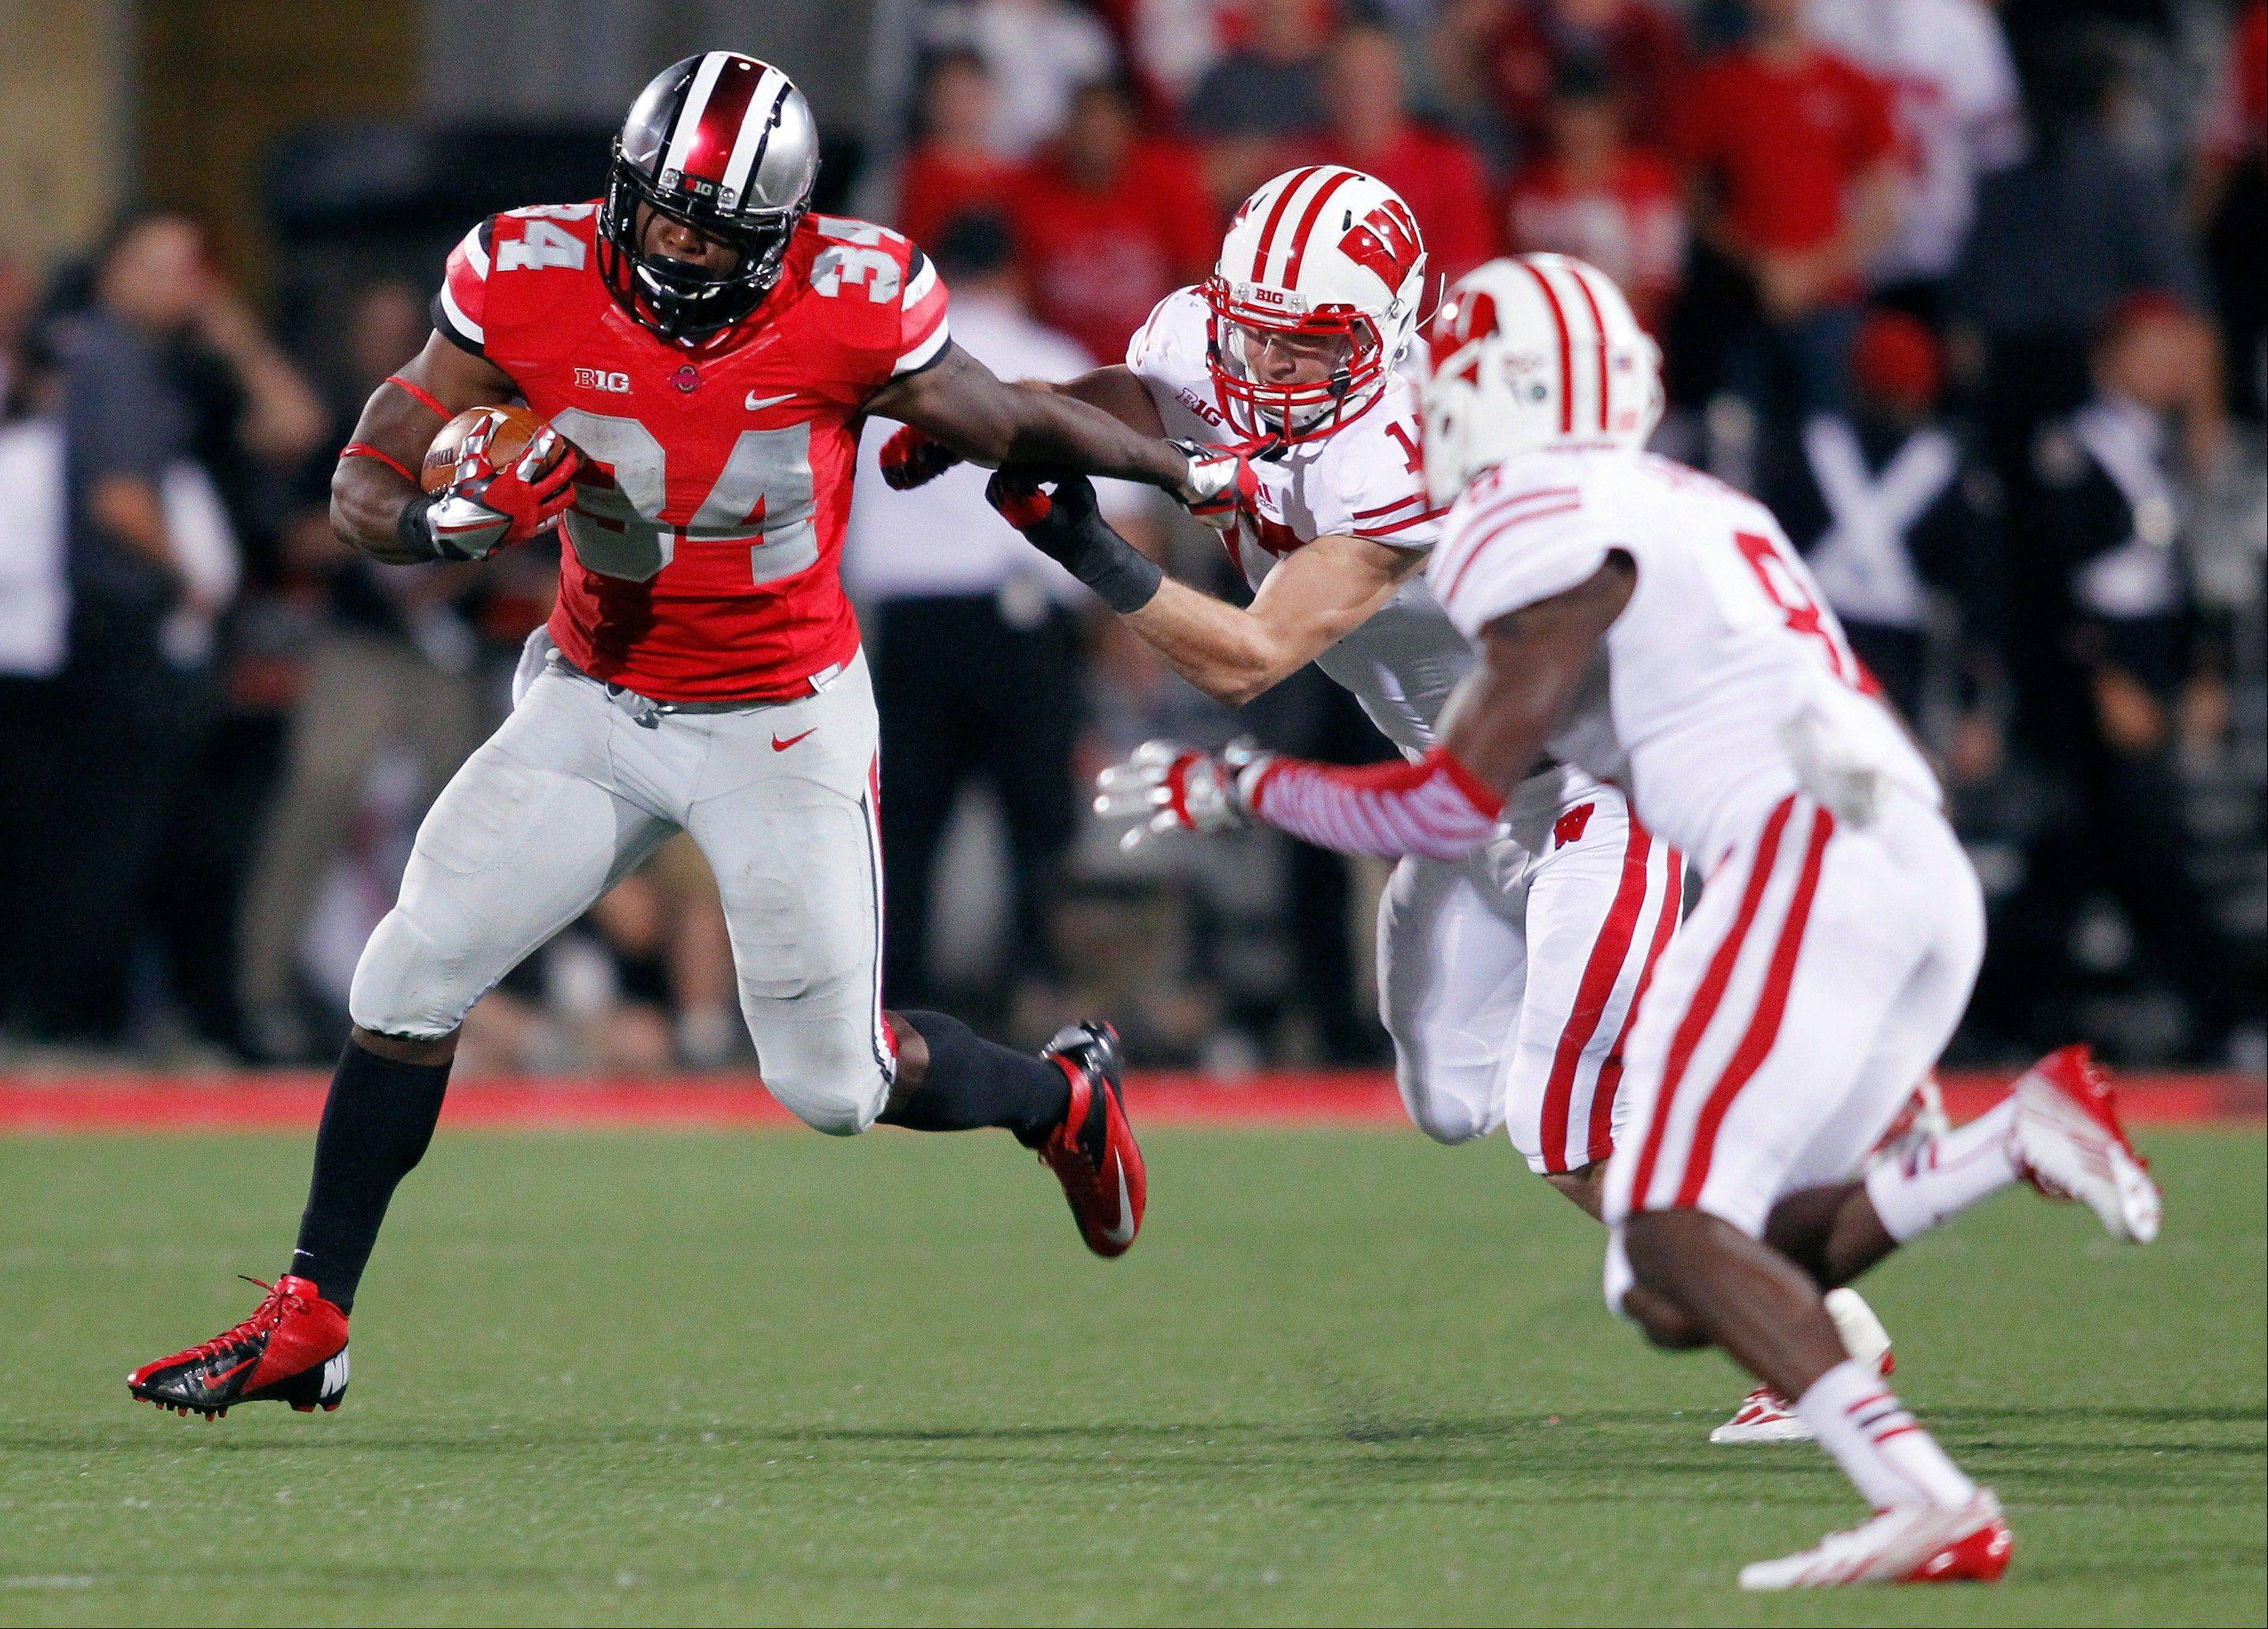 5 things to watch for in Iowa-Ohio State game